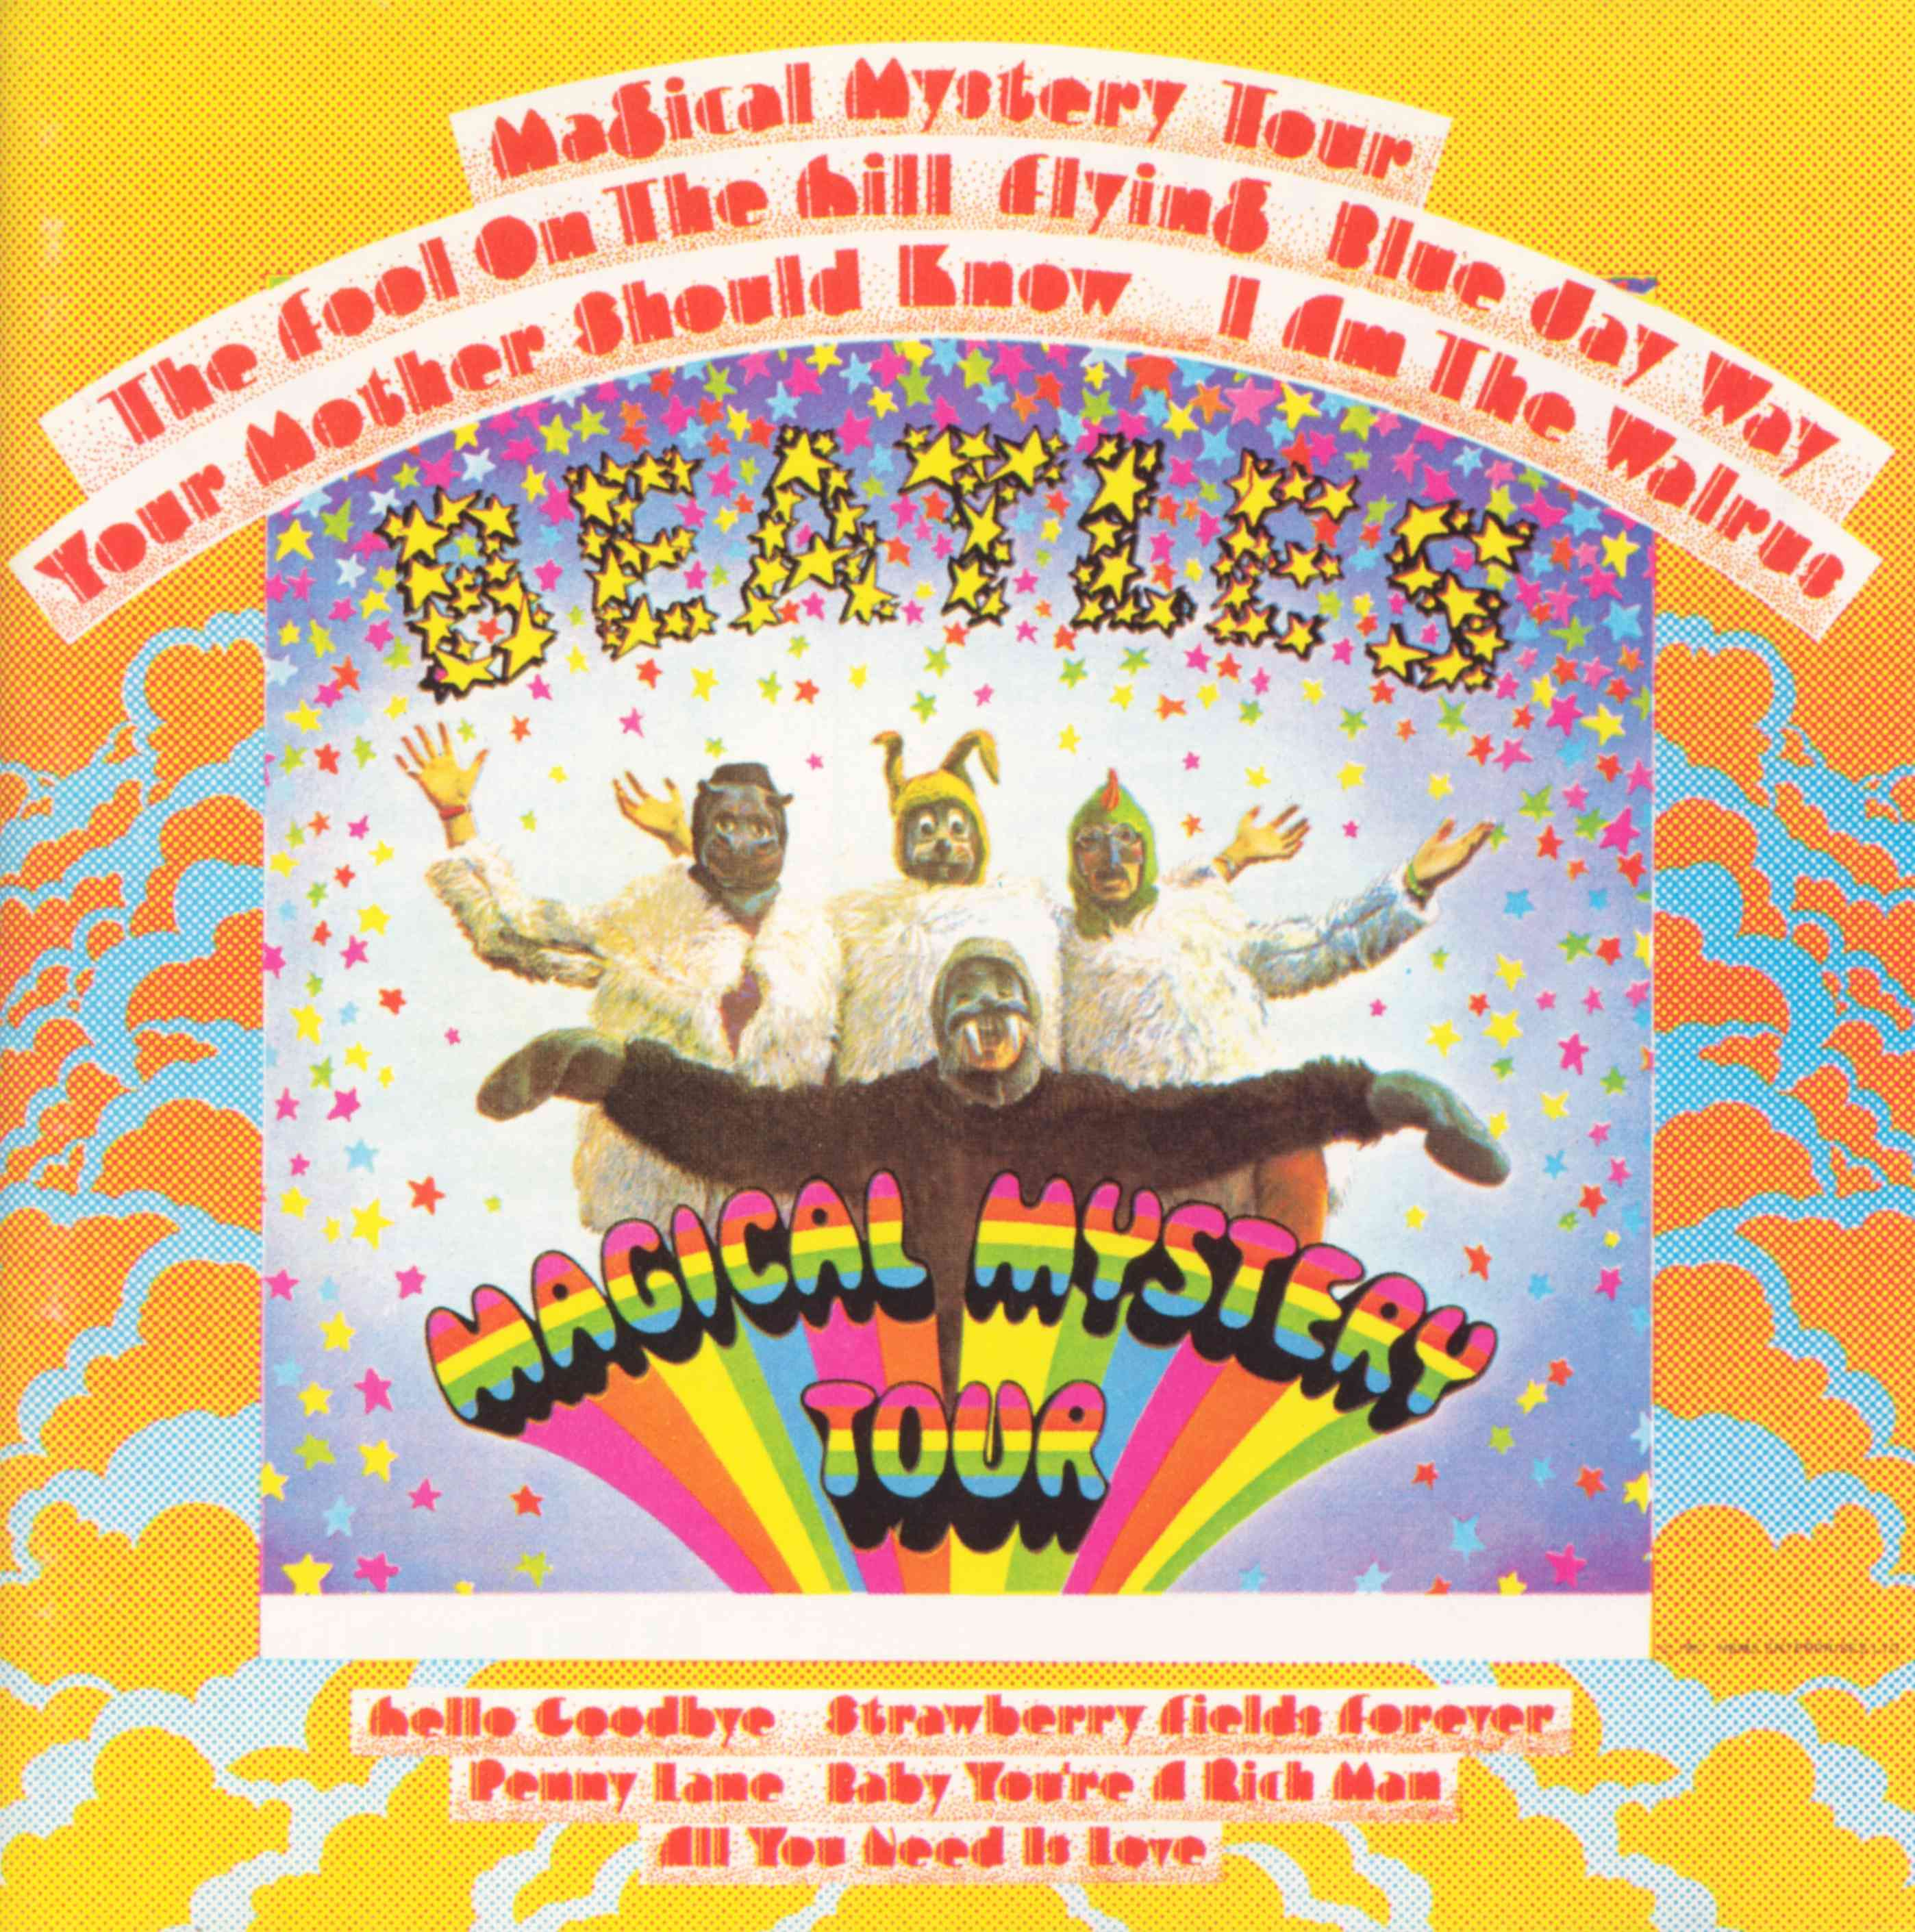 Magical Mystery Tour (US) | Album Covers Wiki | Fandom